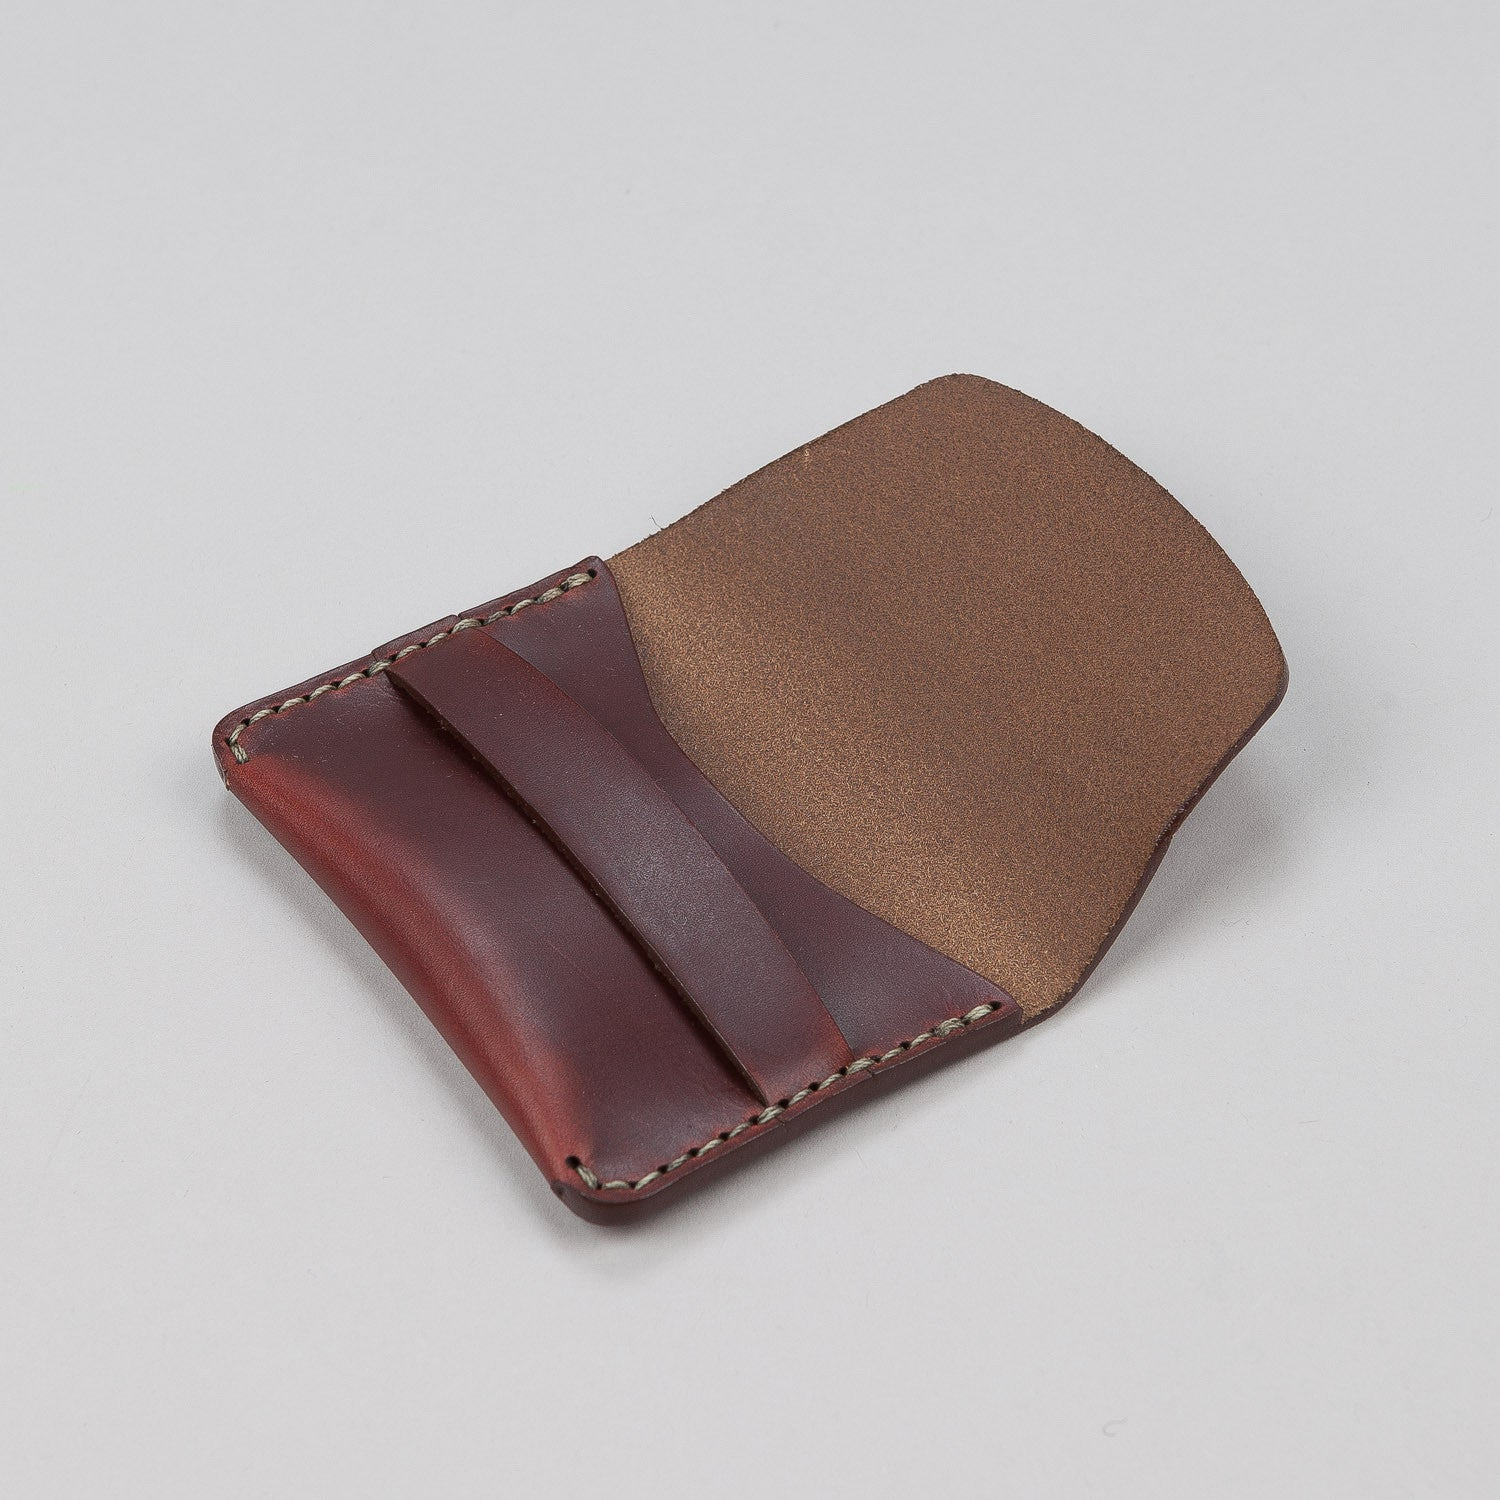 Makr Flap Slim Leather Wallet - Ox Blood